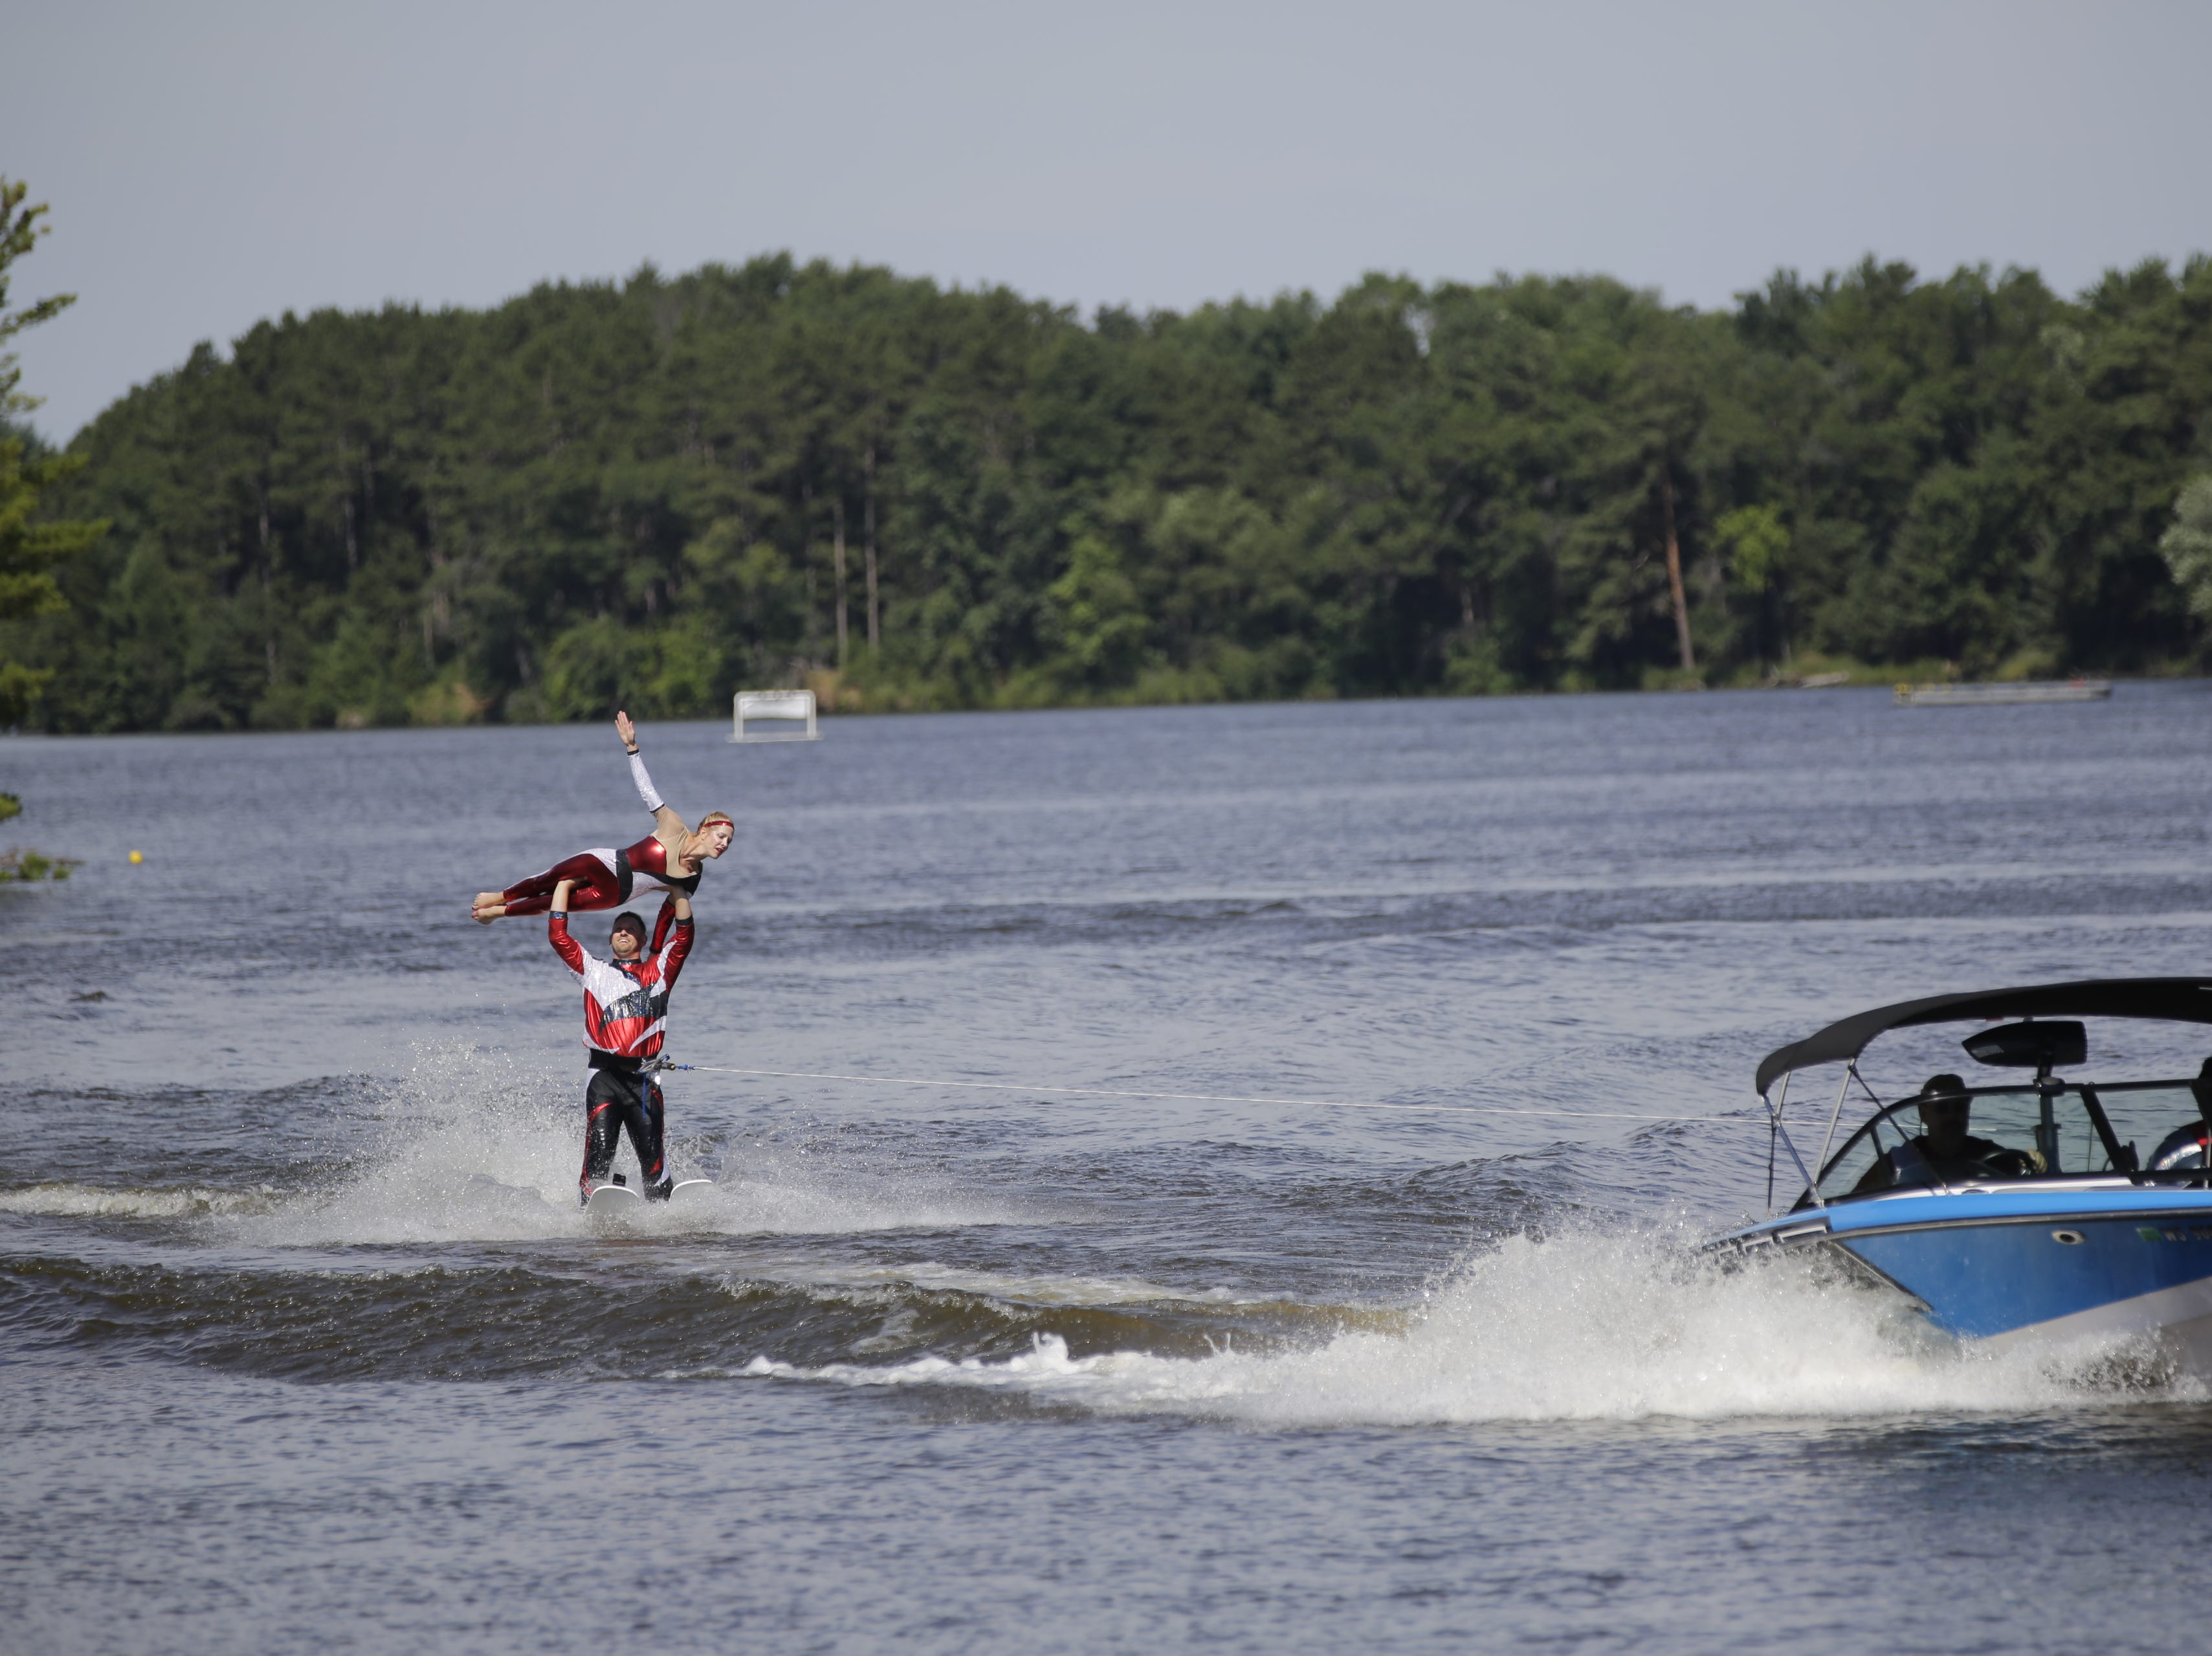 Cory Krivitz and Kimberly Stoner compete in the doubles category during the Wisconsin State Water Ski Show Championships on Lake Wazeecha in Kellner Thursday, July 19, 2018.